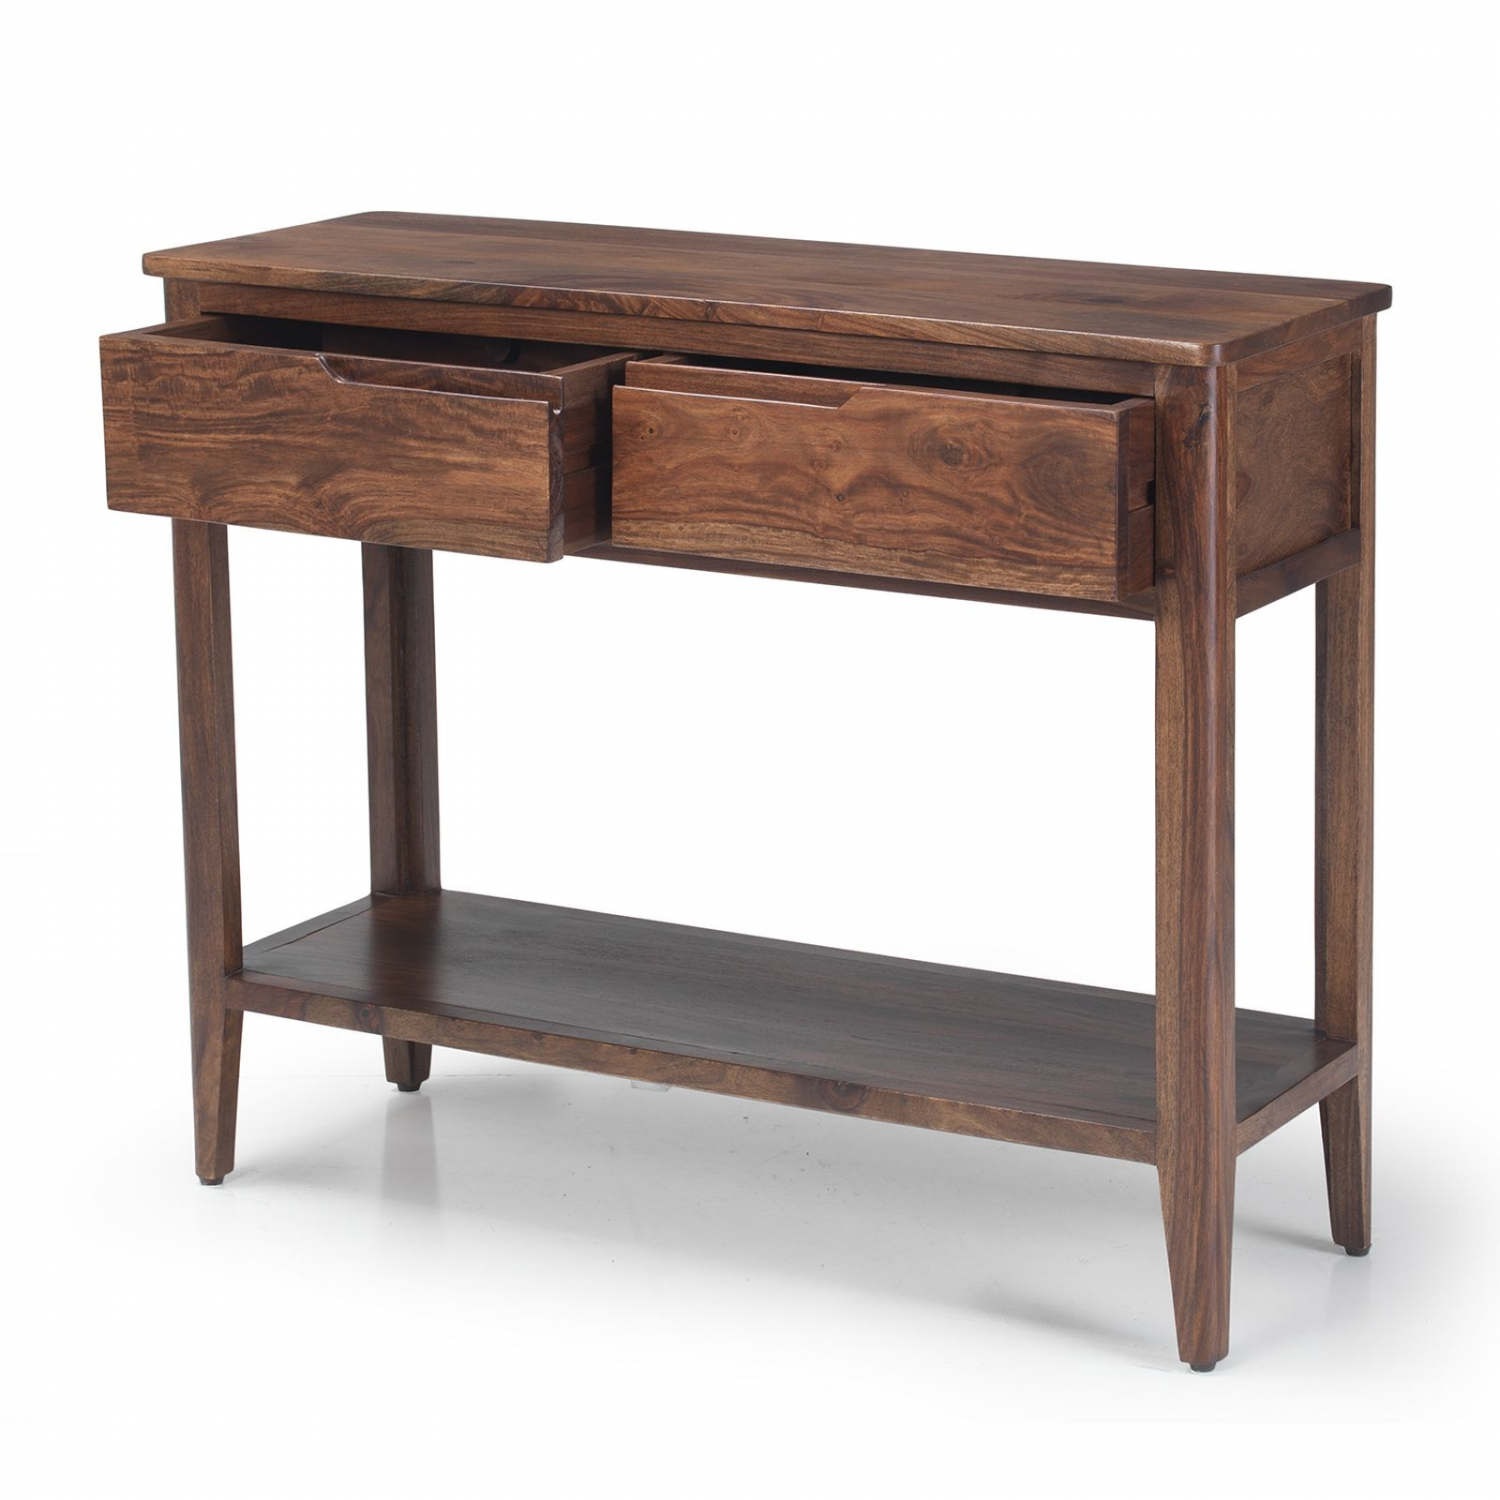 Padstow walnut dark wood furniture console hall table with for Dark wood hall table